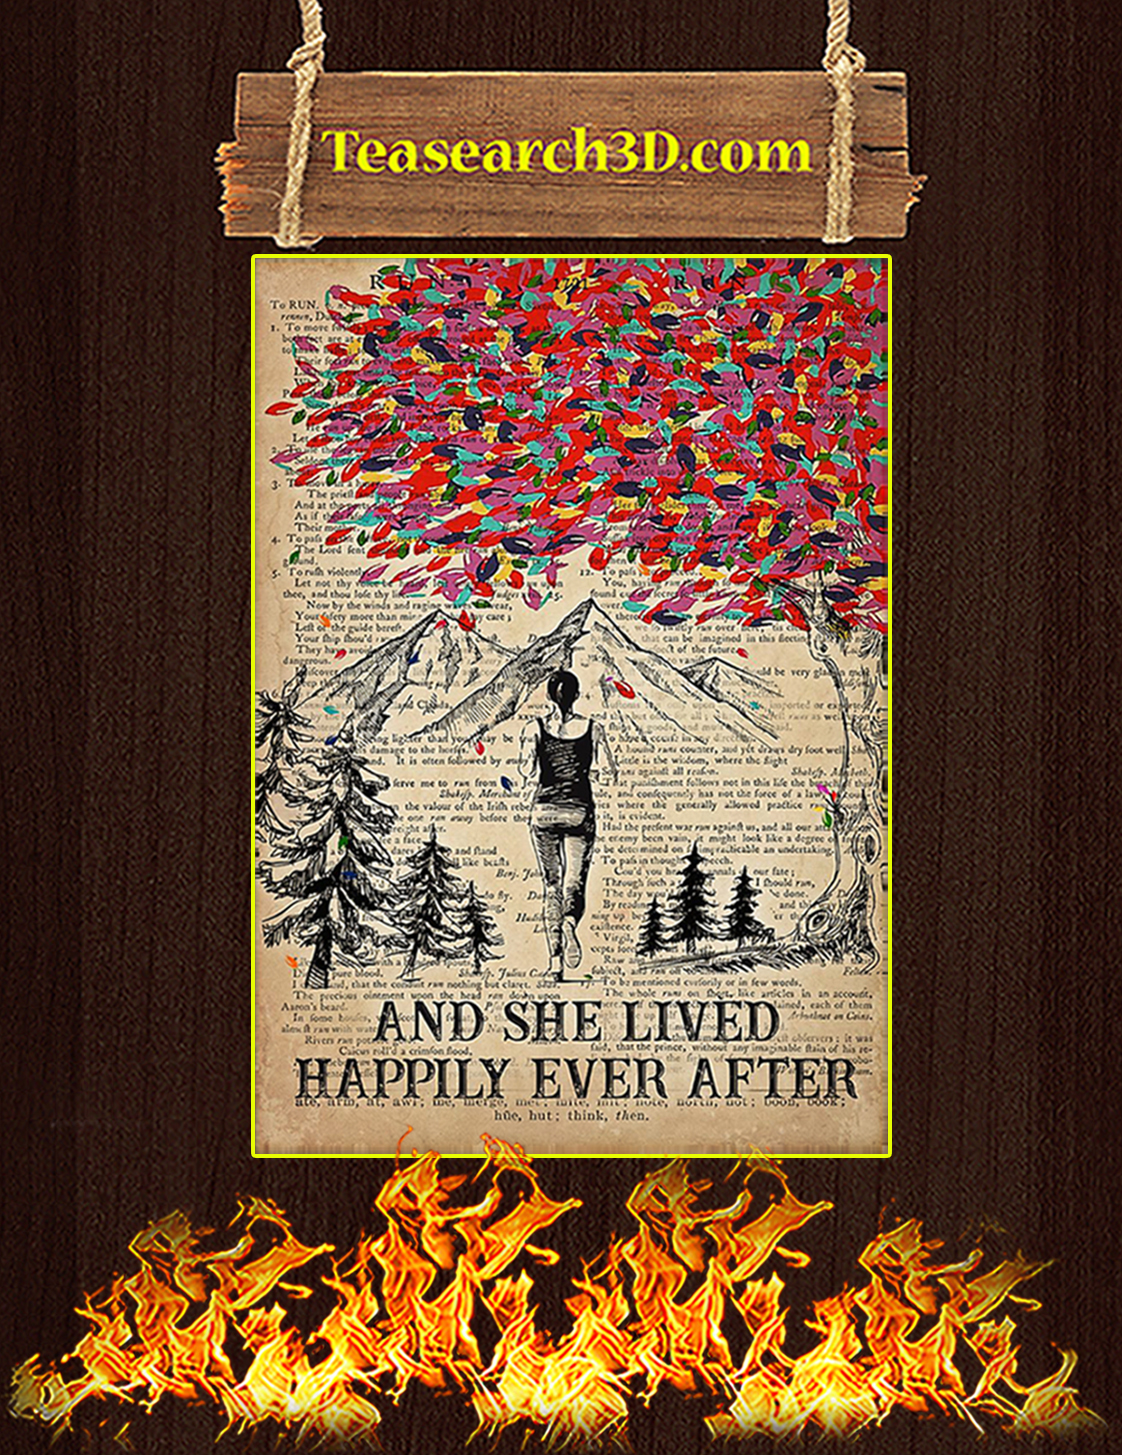 Running And she lived happily ever after poster A3